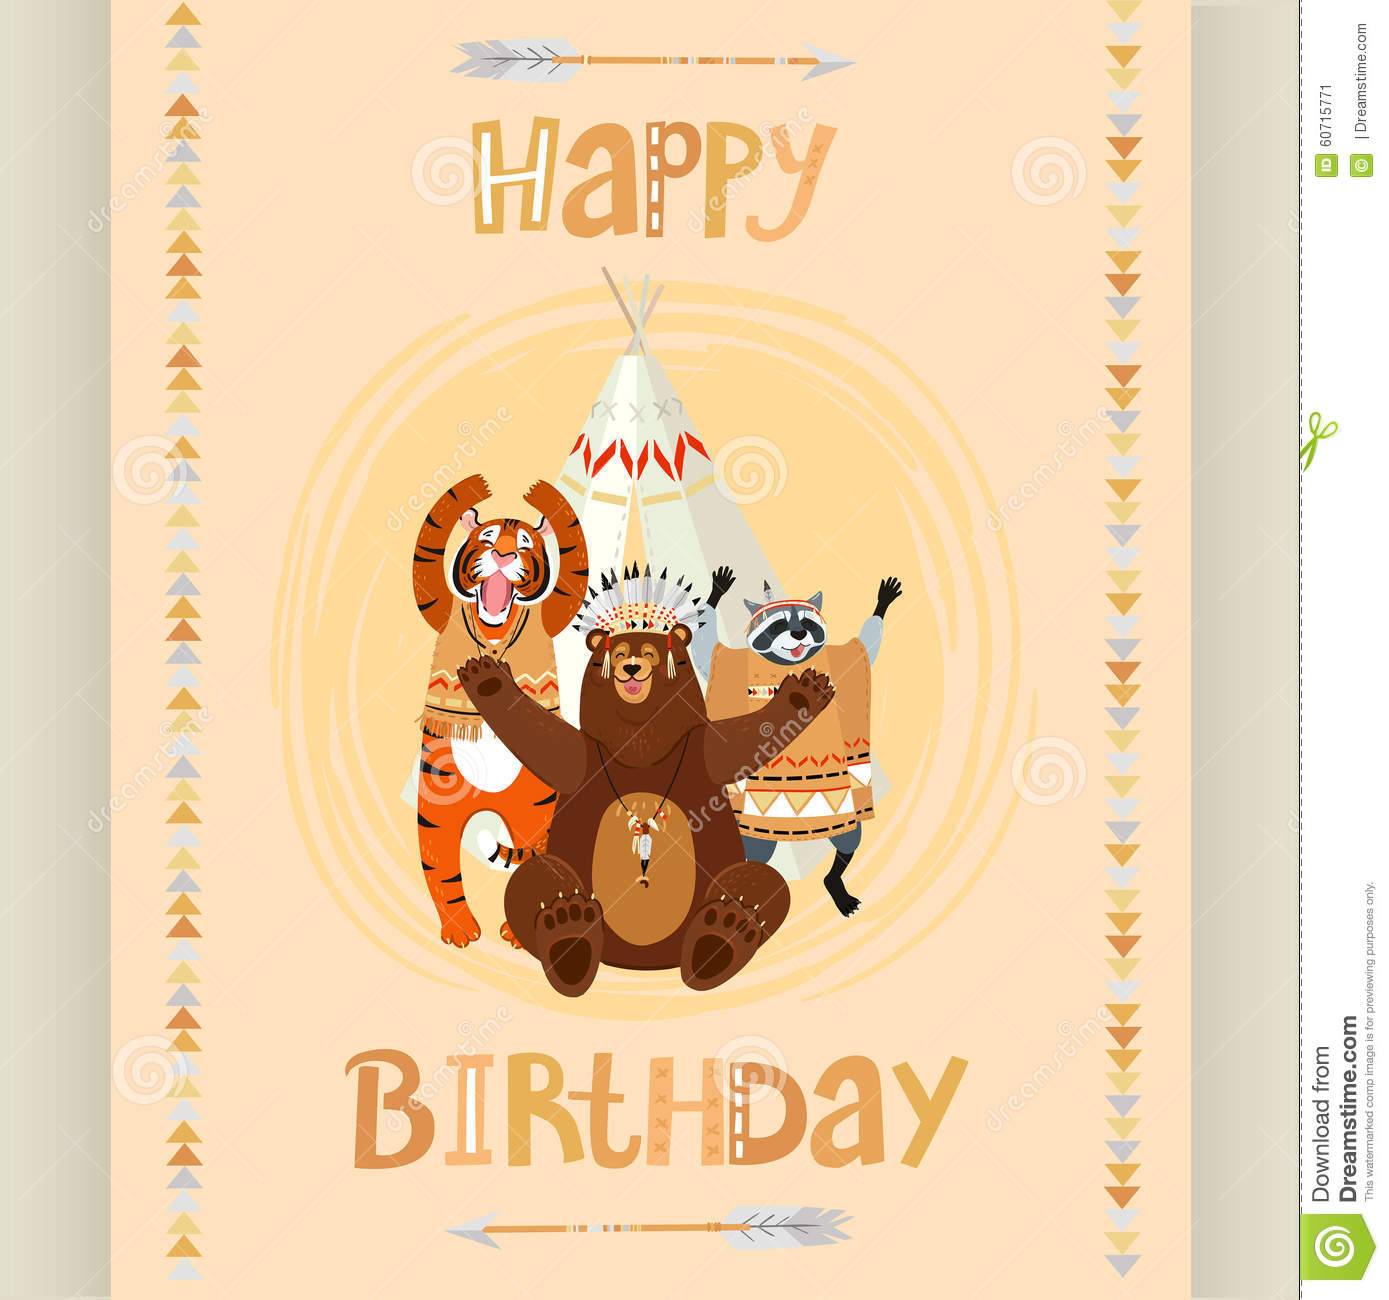 American Indian Birthday Card Vector Image 60715771 – Indian Birthday Cards